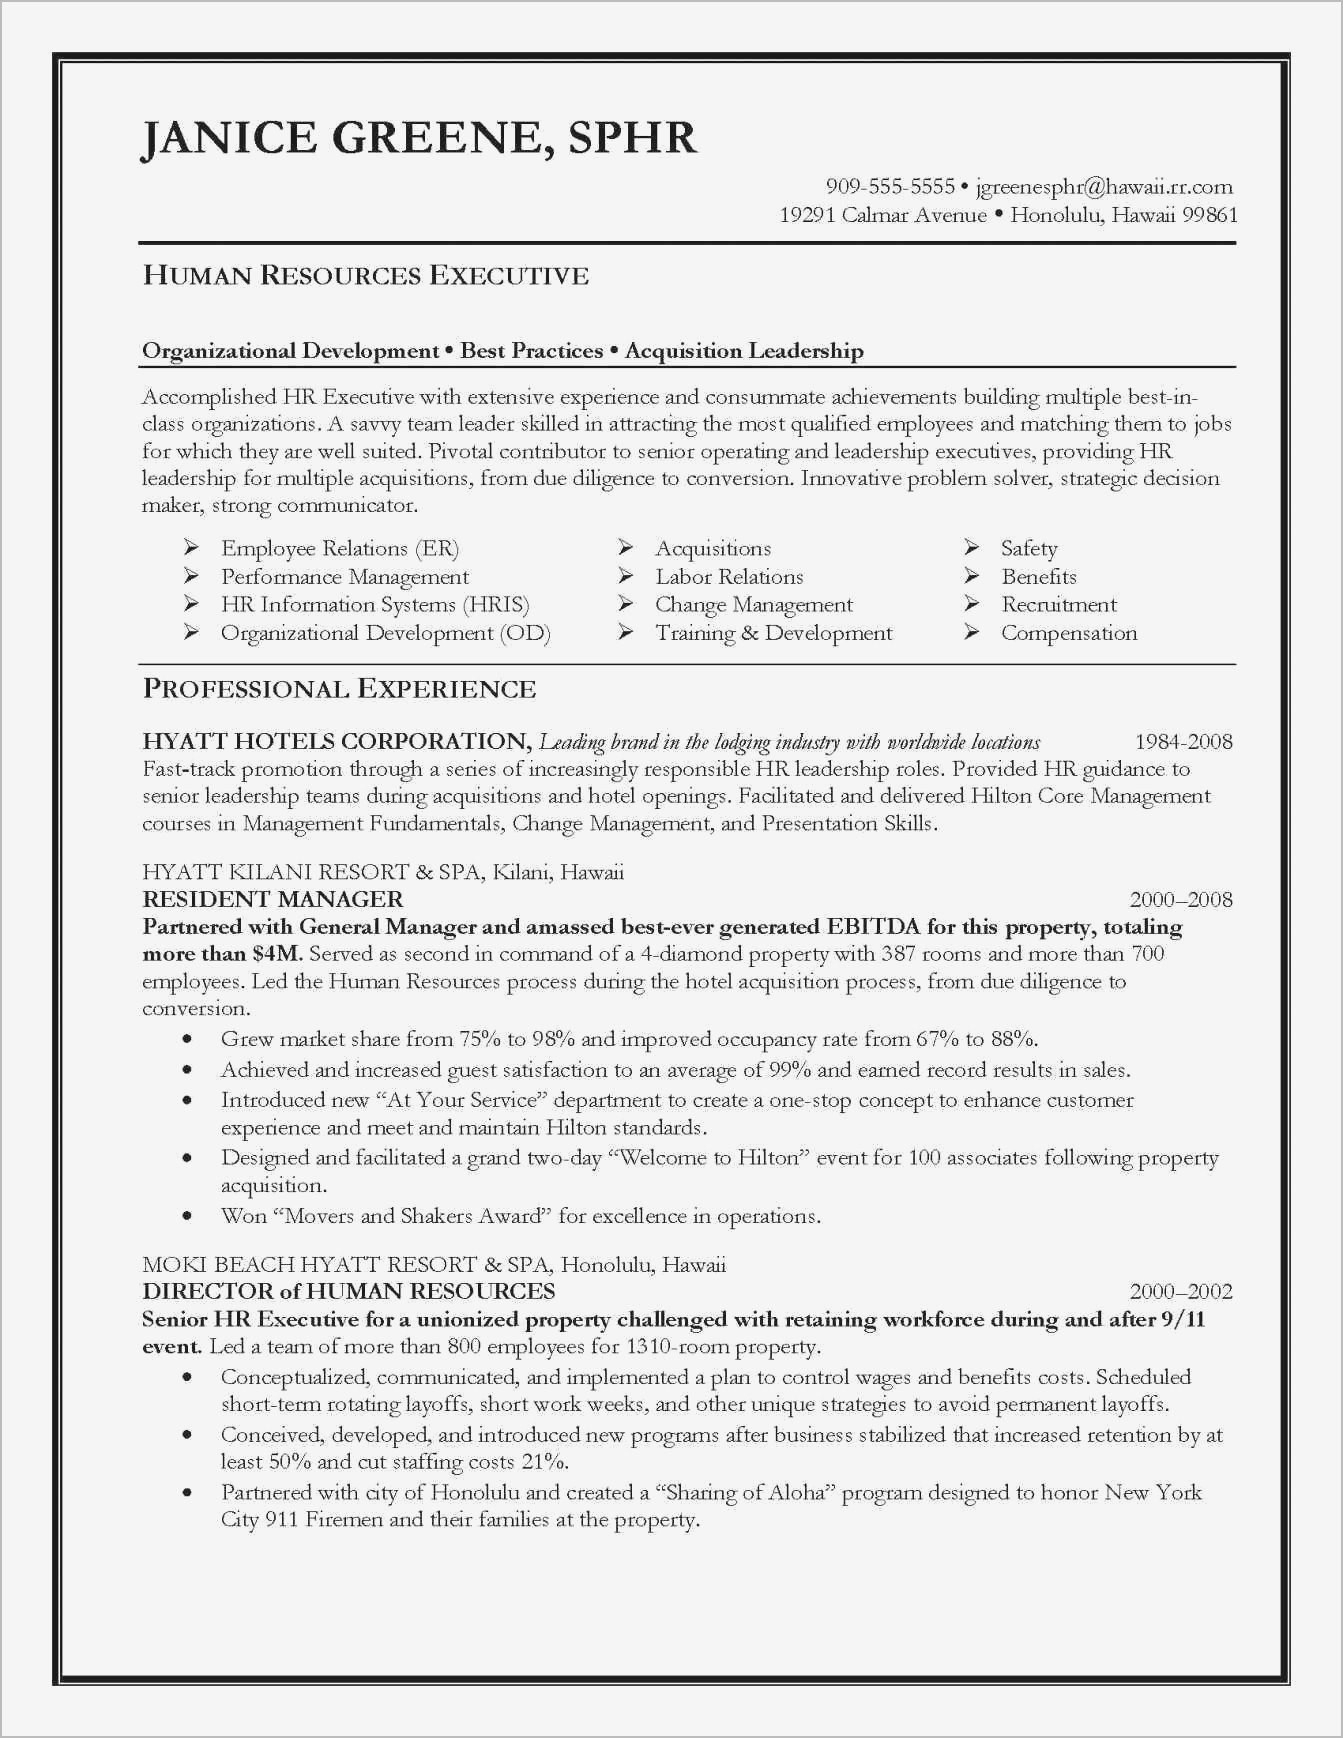 Resume Best Practices - Resumes that Work Best How Write A Resume for A Job Good